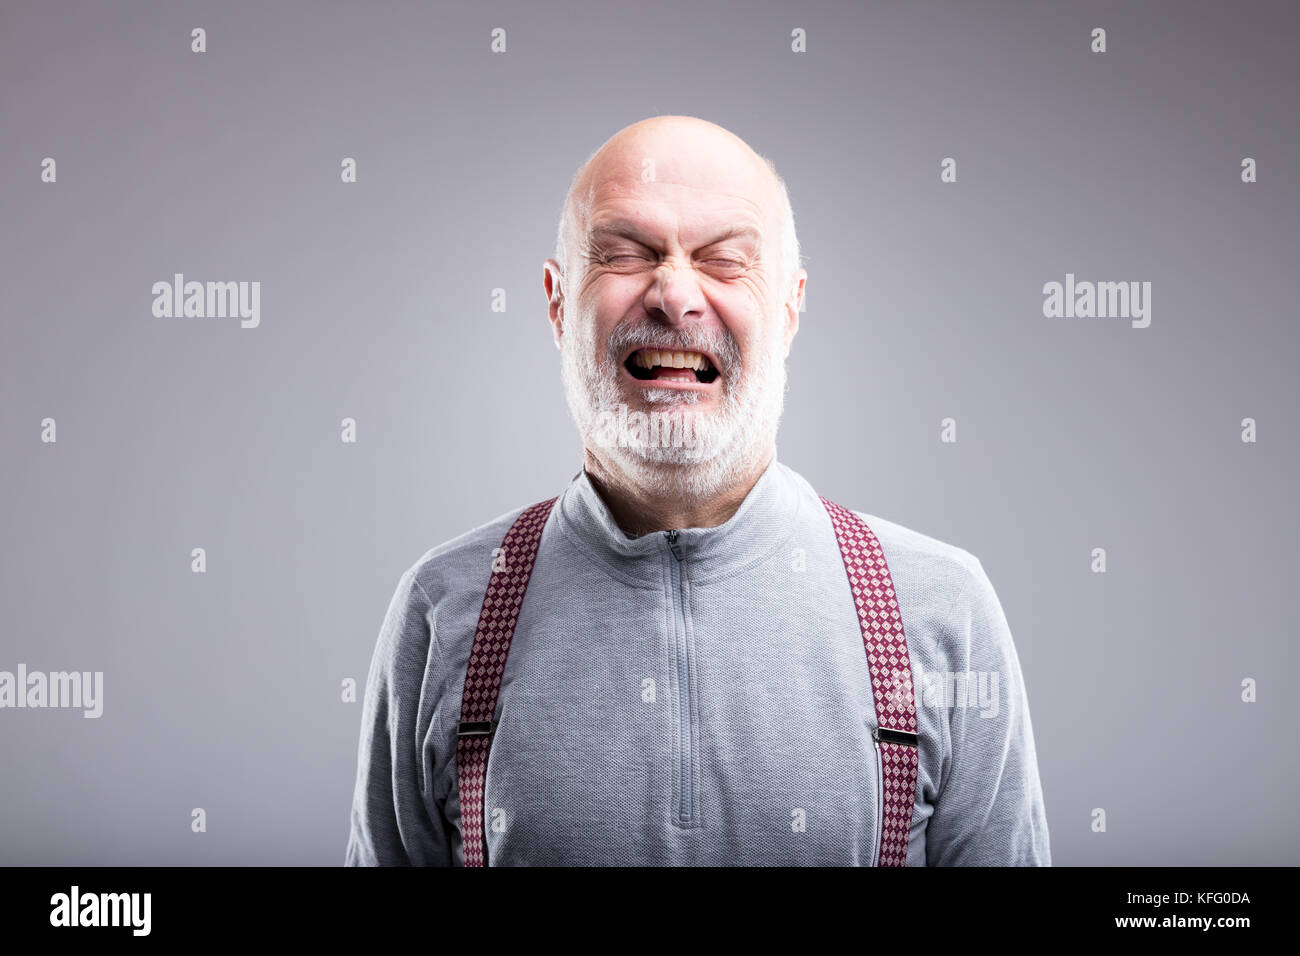 teatrical exaggerated expression of an old man crying Stock Photo